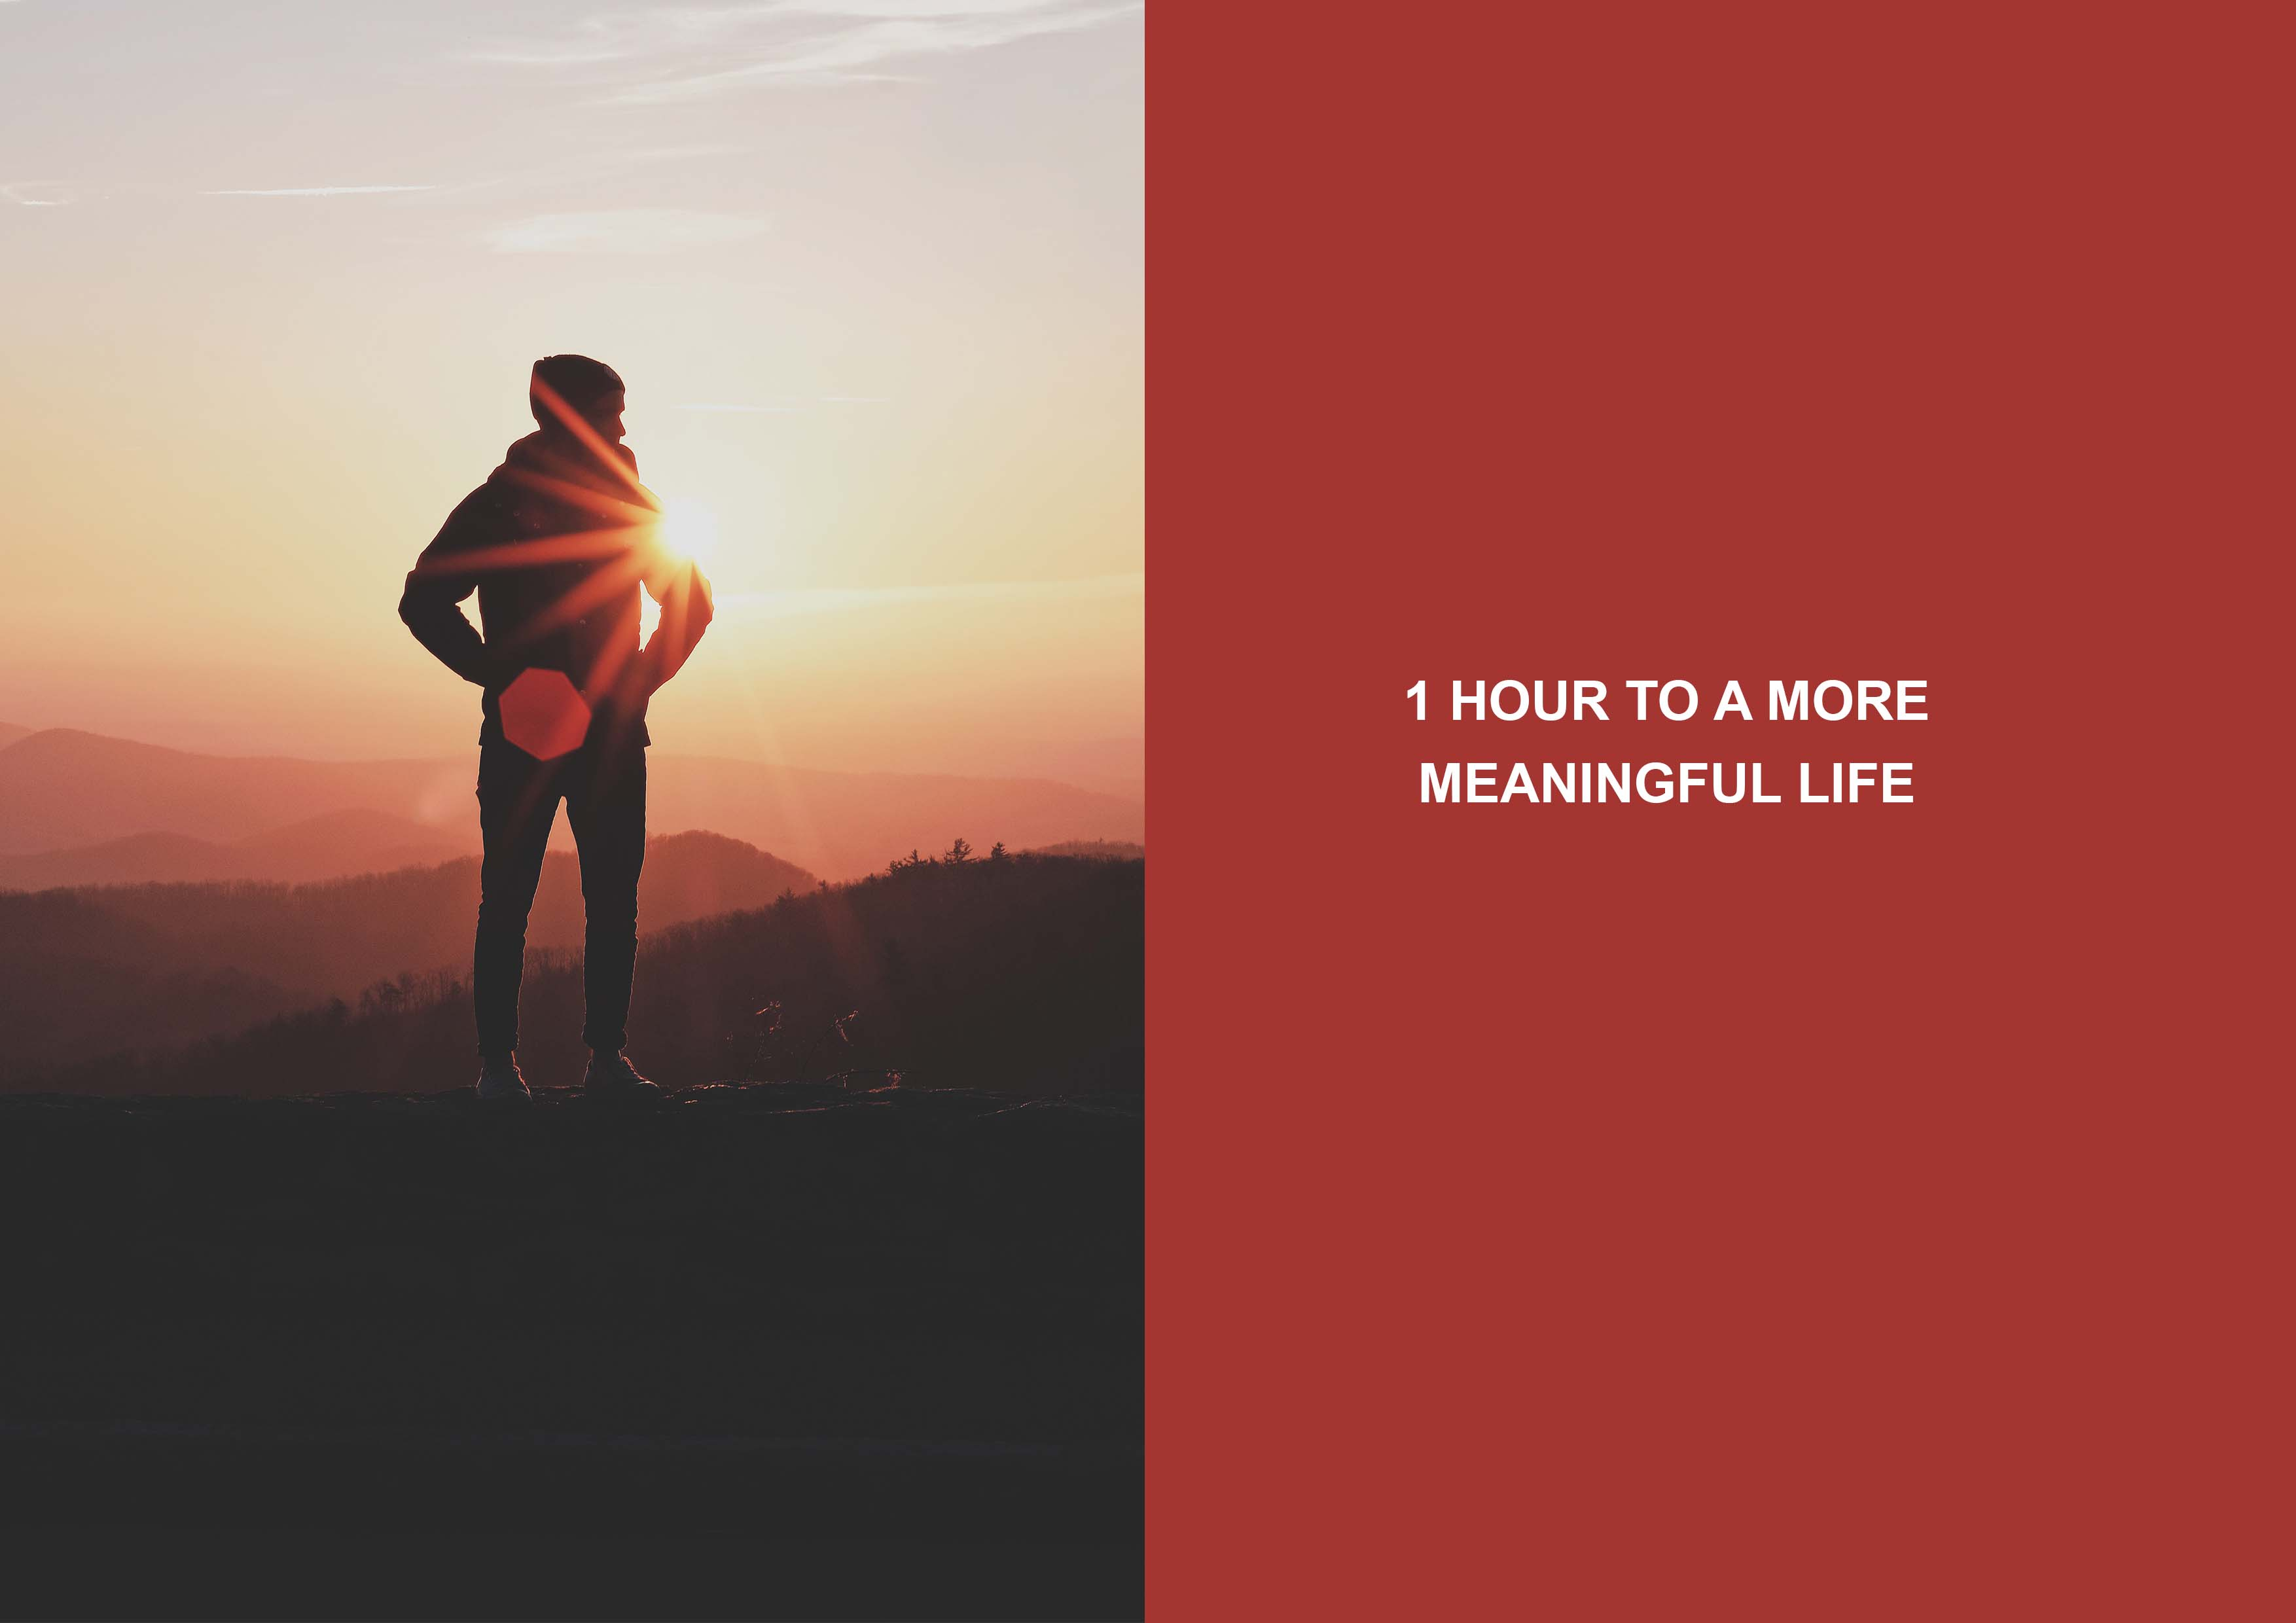 1 Hour to a More Meaningful Life